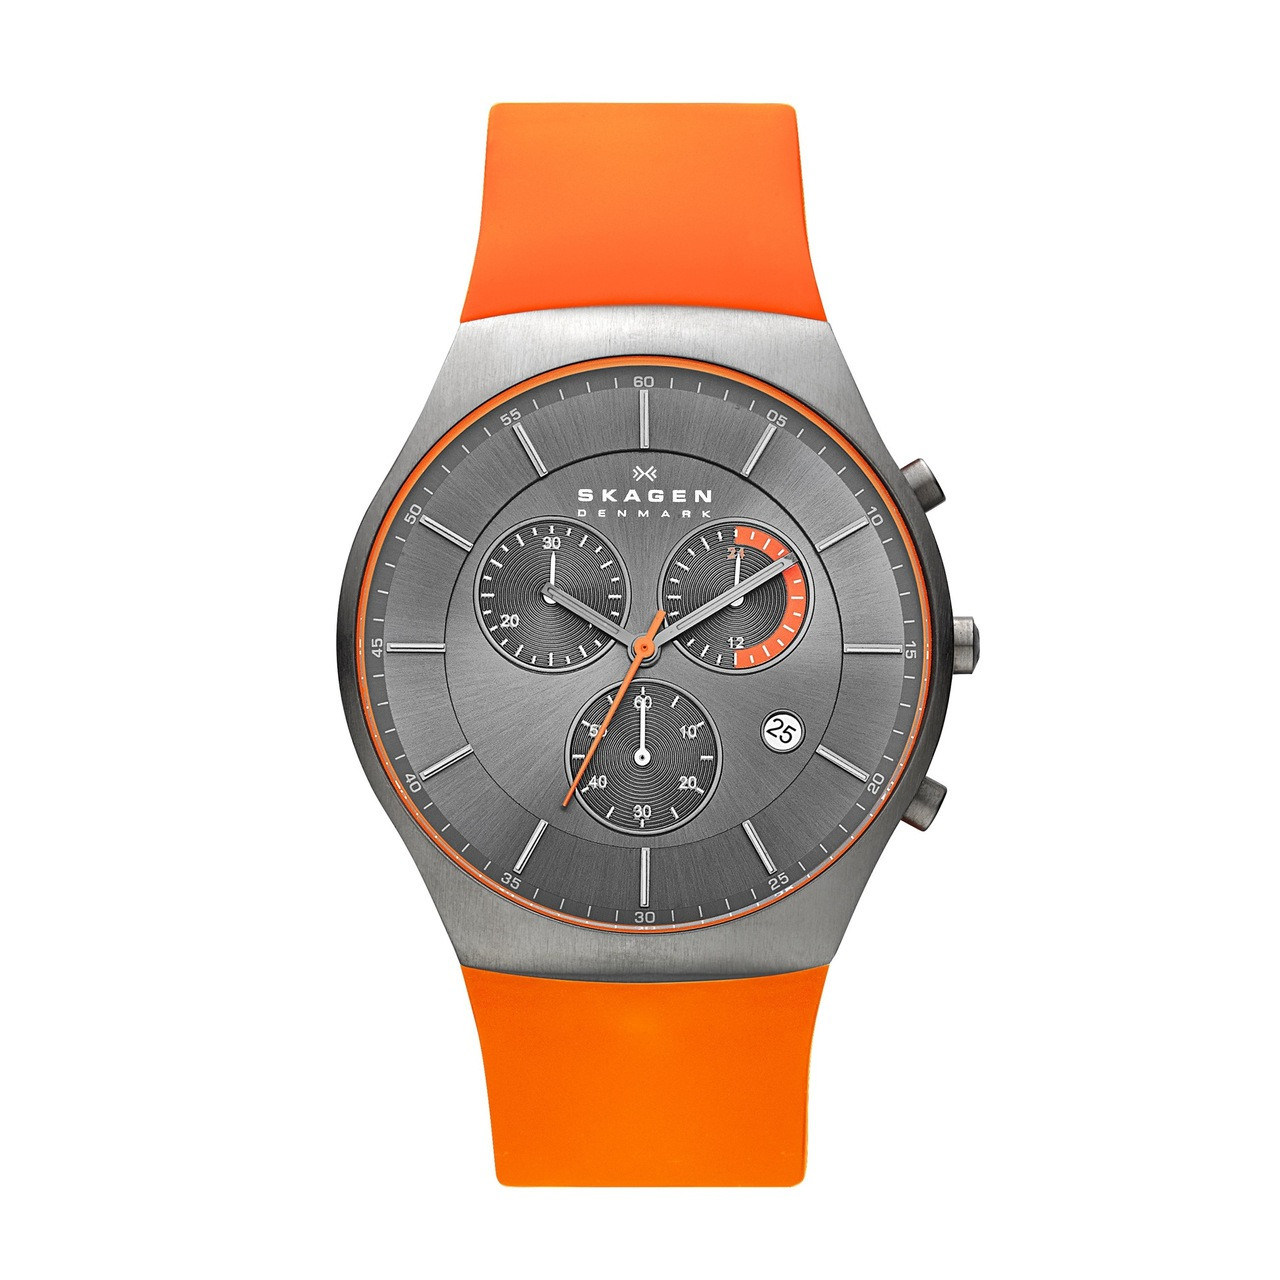 Watch Review - Skagen SKW6074 Aktiv Titanium Orange Watch Silicone Strap